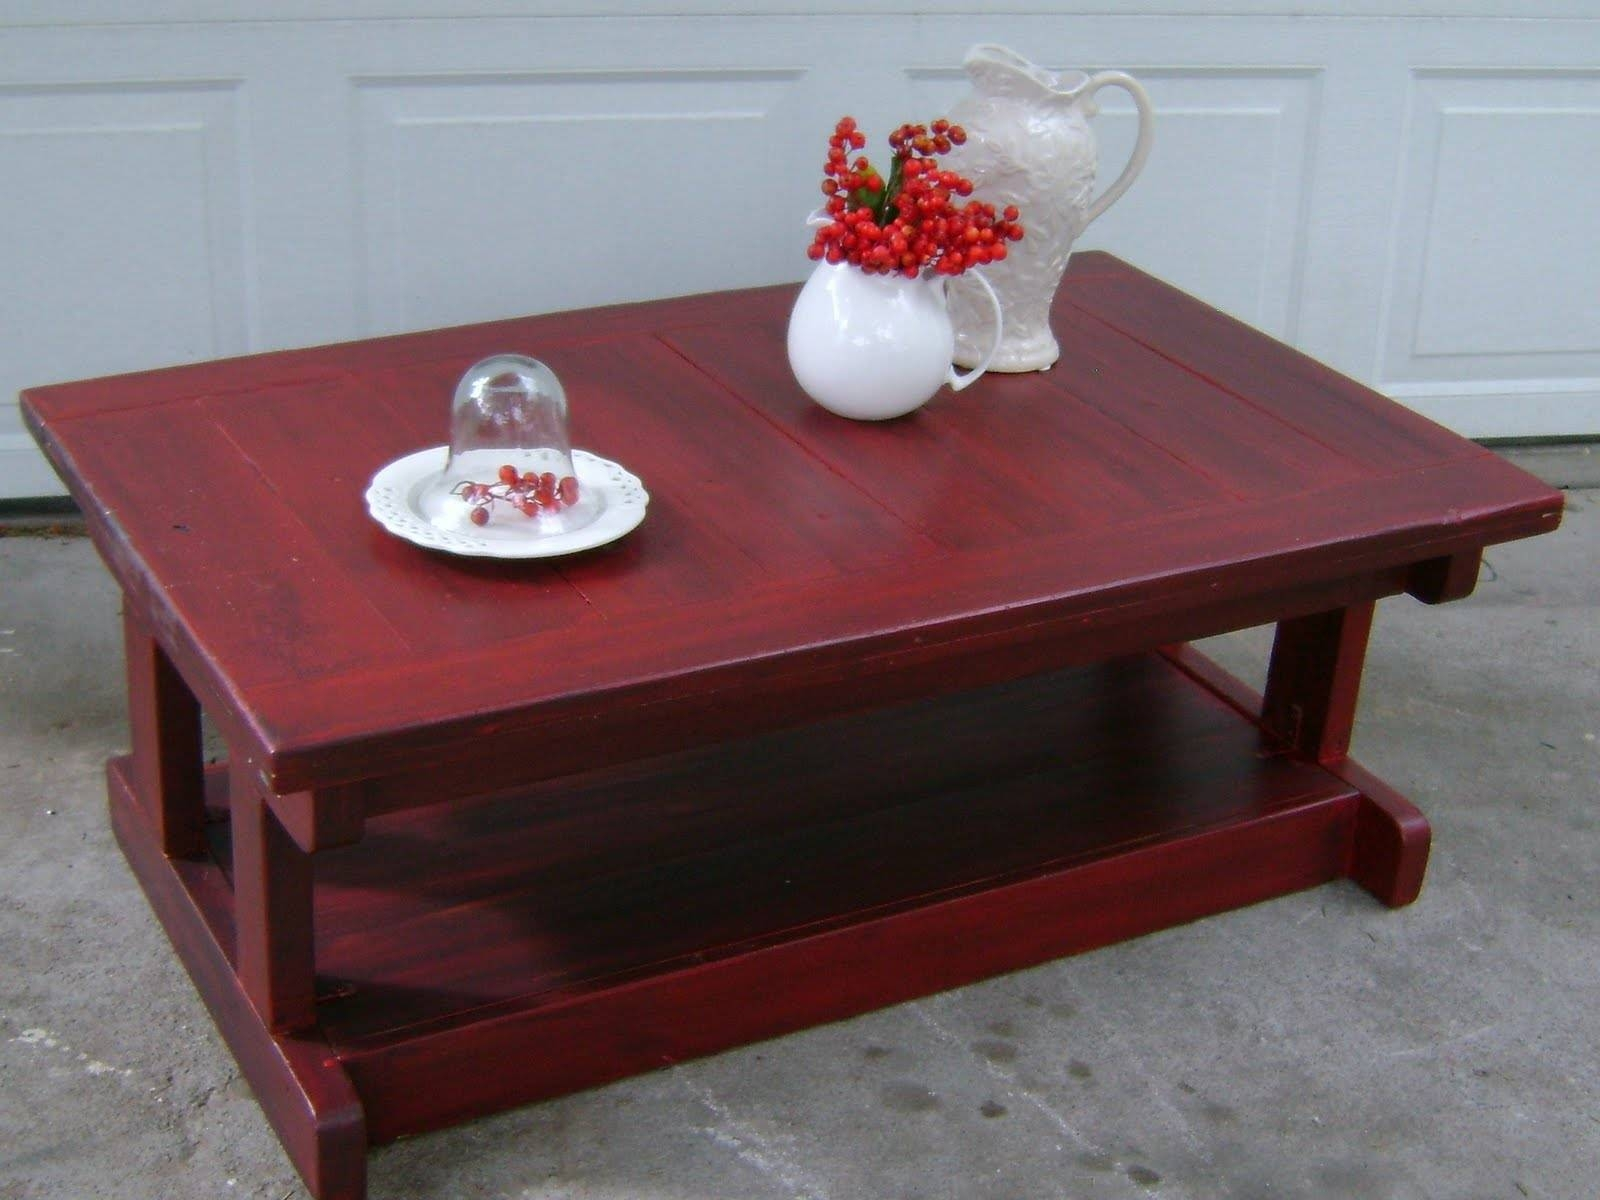 Red Coffee Tables With Glass Material And Trunk As Storage in Red Coffee Table (Image 25 of 30)